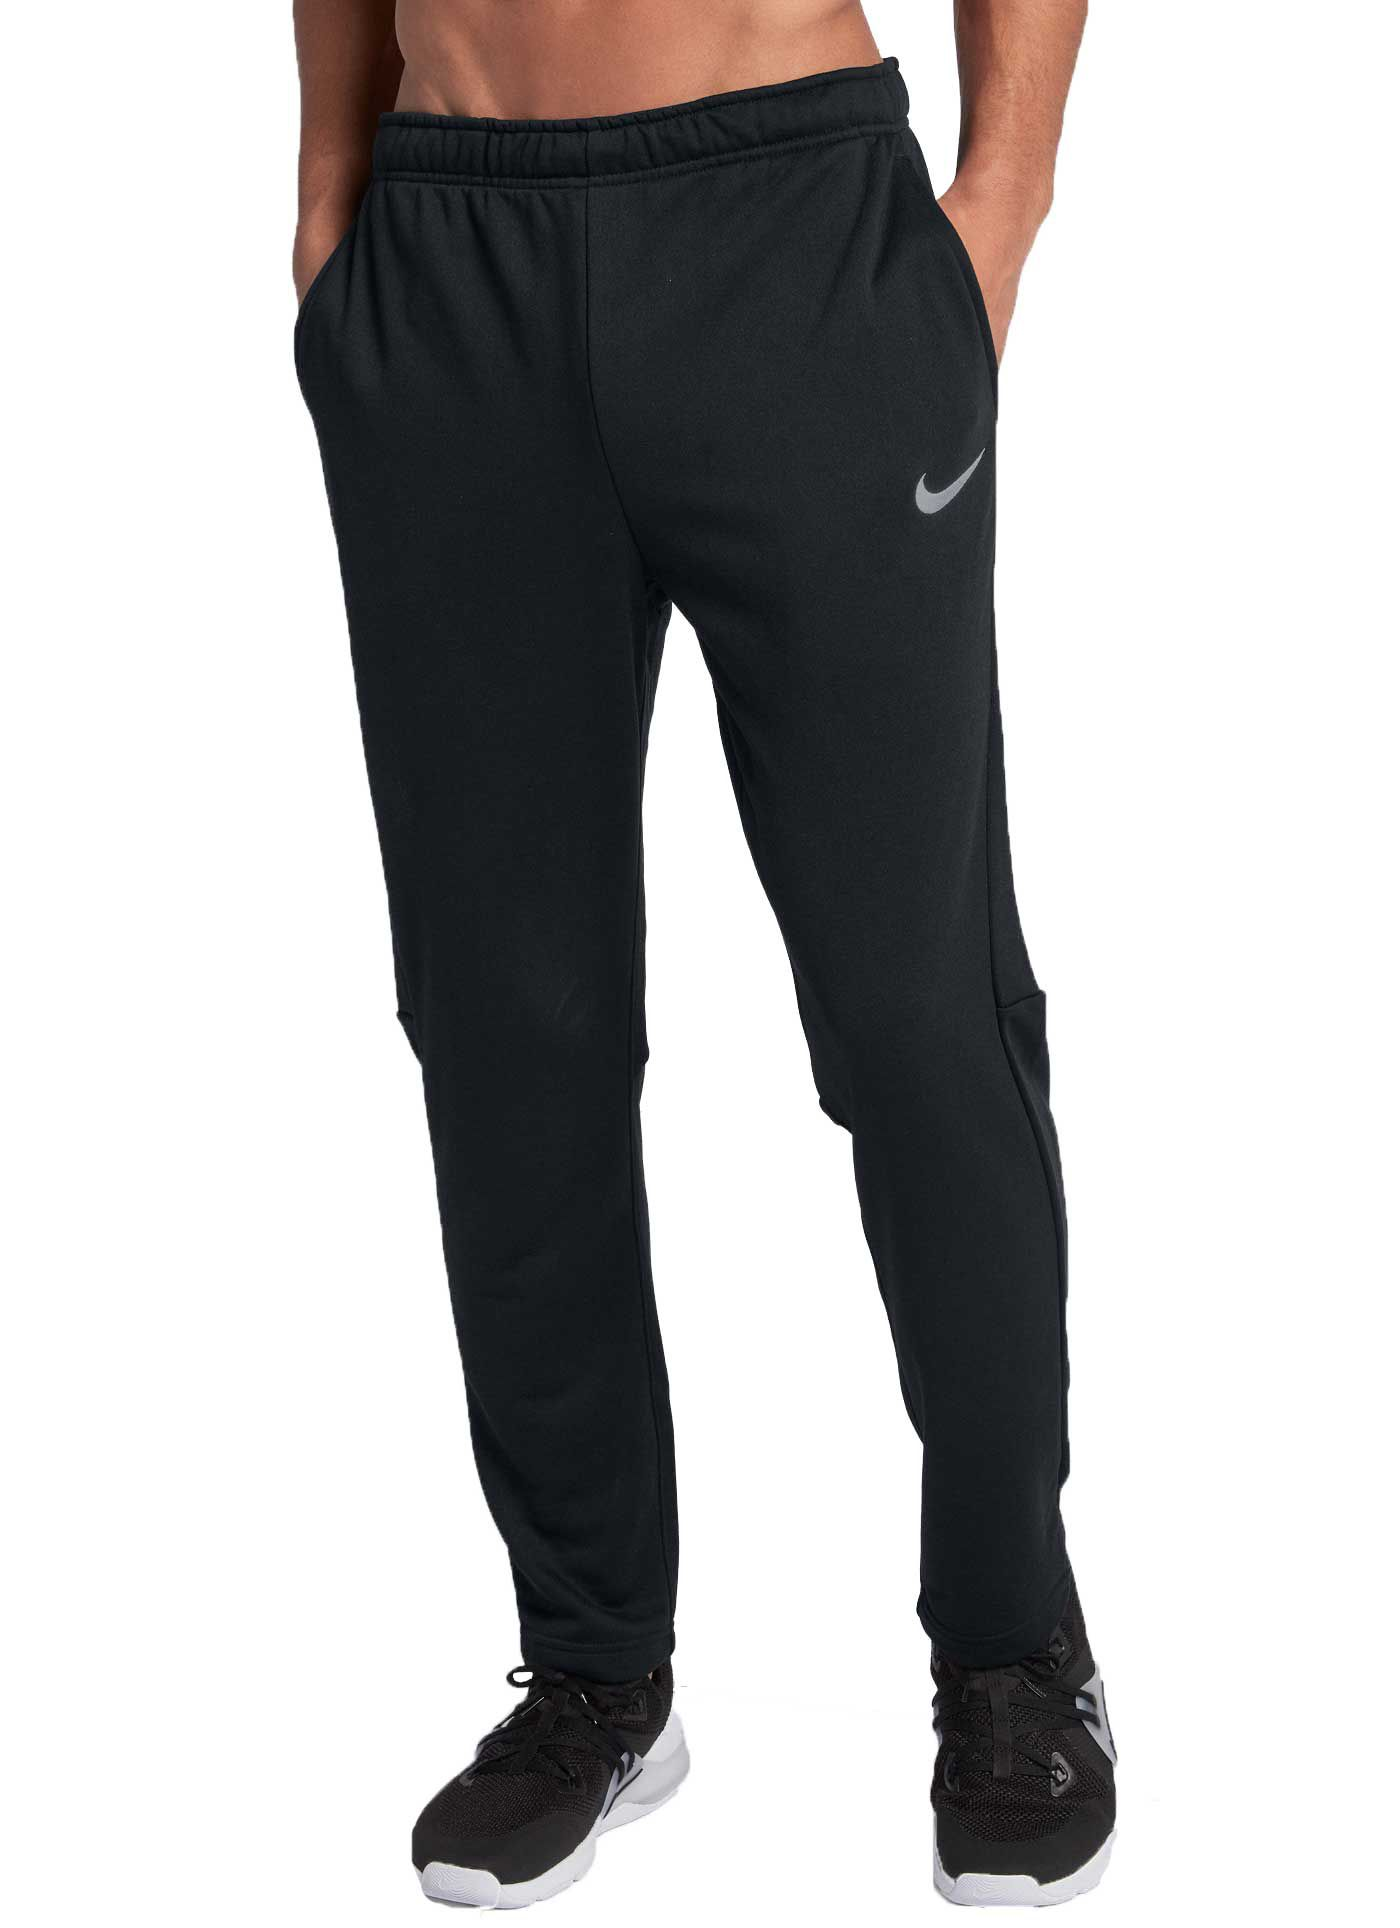 Nike Men's Dry Regular Fleece Pants (Regular and Big & Tall)